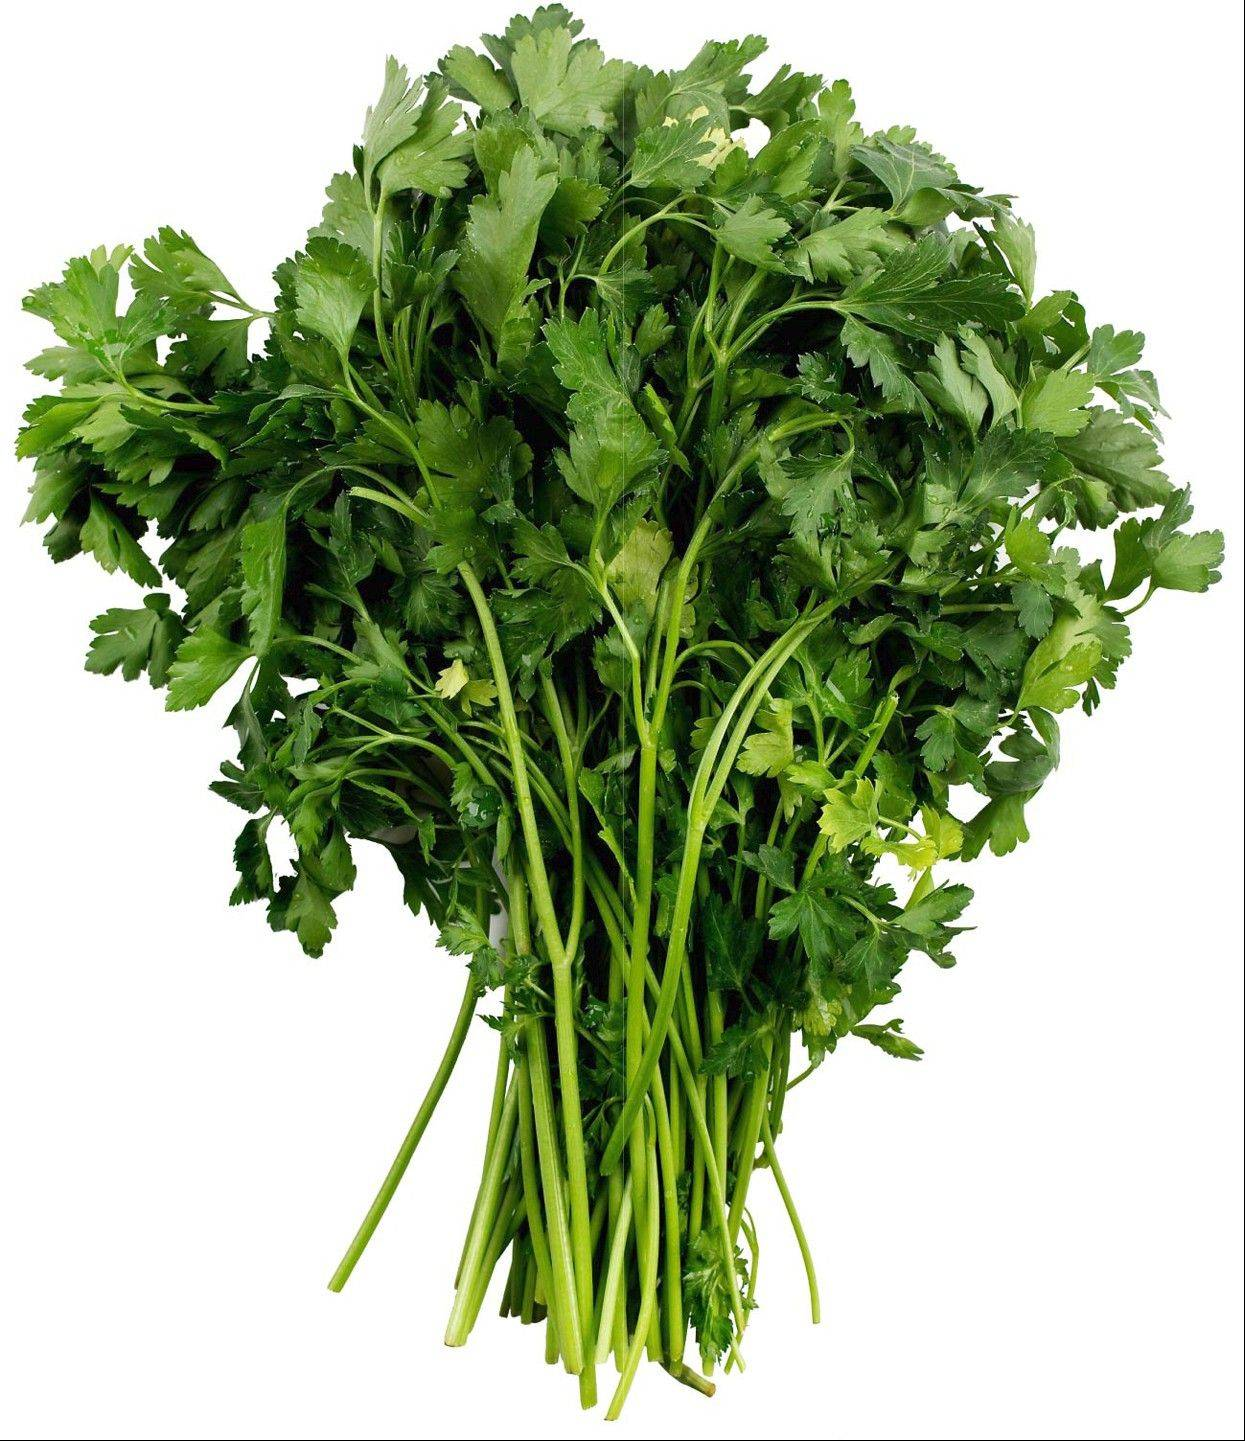 Flat or curly, parsley deserves a starring